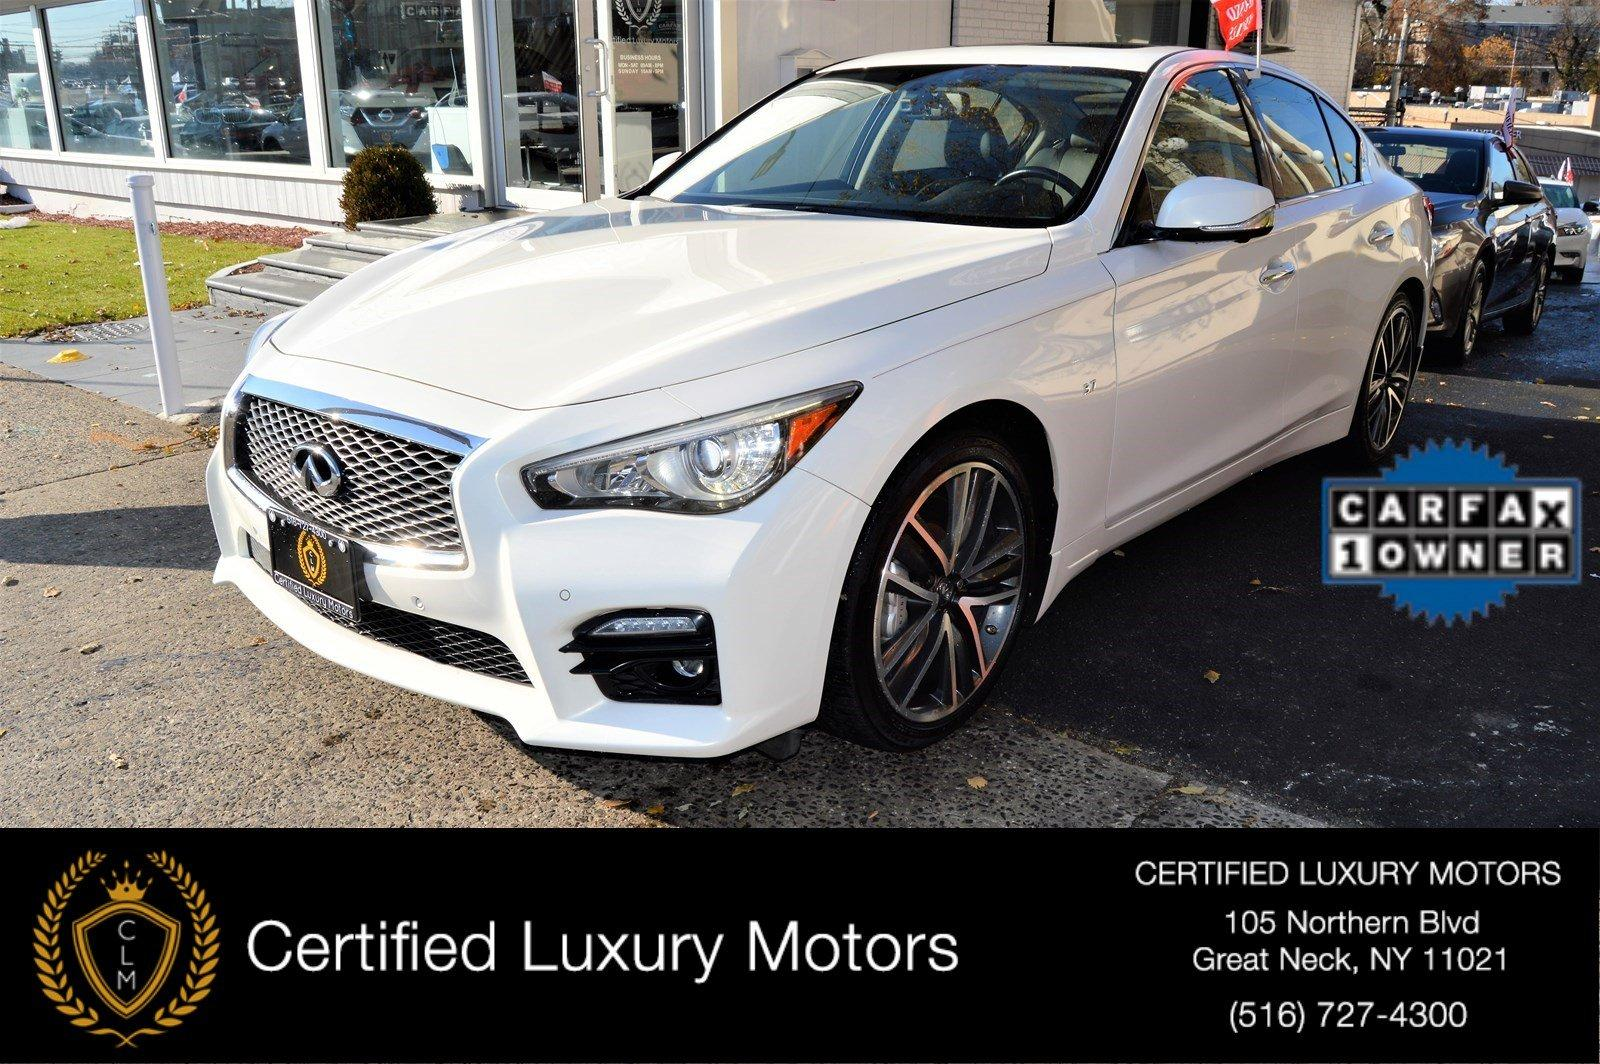 2014 infiniti q50 hybrid sport stock 2807 for sale near. Black Bedroom Furniture Sets. Home Design Ideas